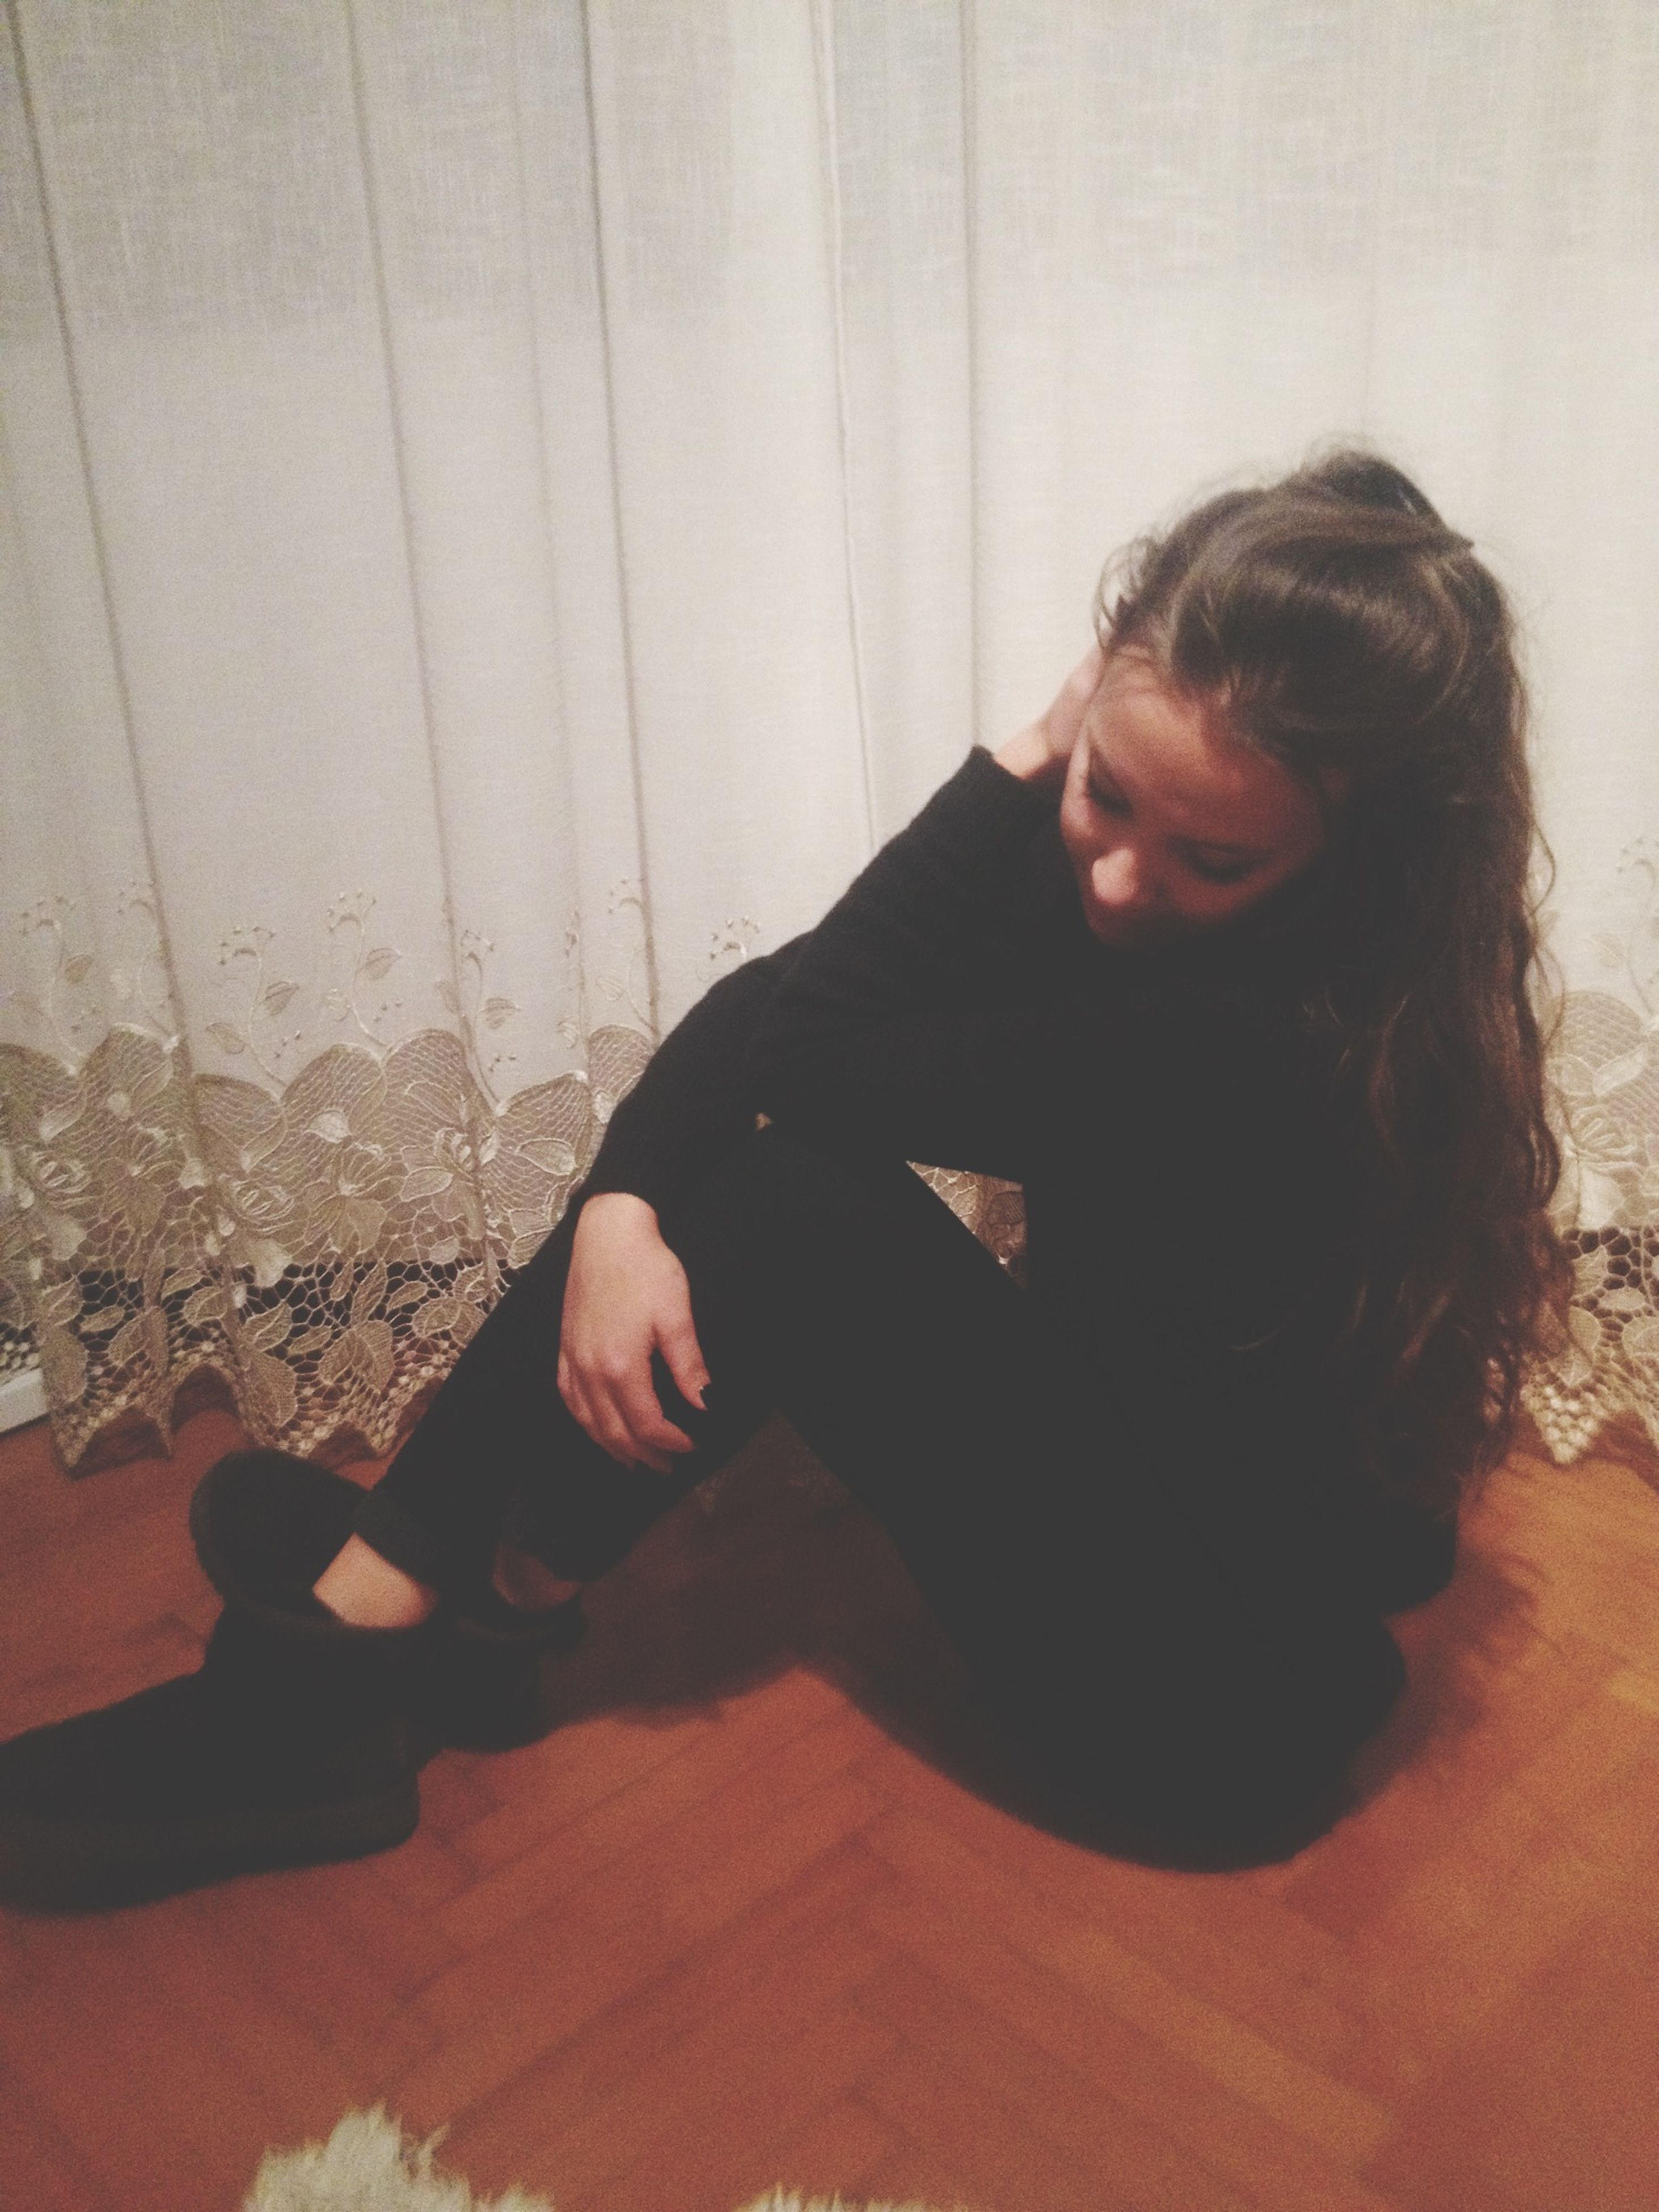 indoors, young women, lifestyles, young adult, person, leisure activity, casual clothing, home interior, long hair, relaxation, headshot, sitting, eyes closed, front view, waist up, contemplation, looking at camera